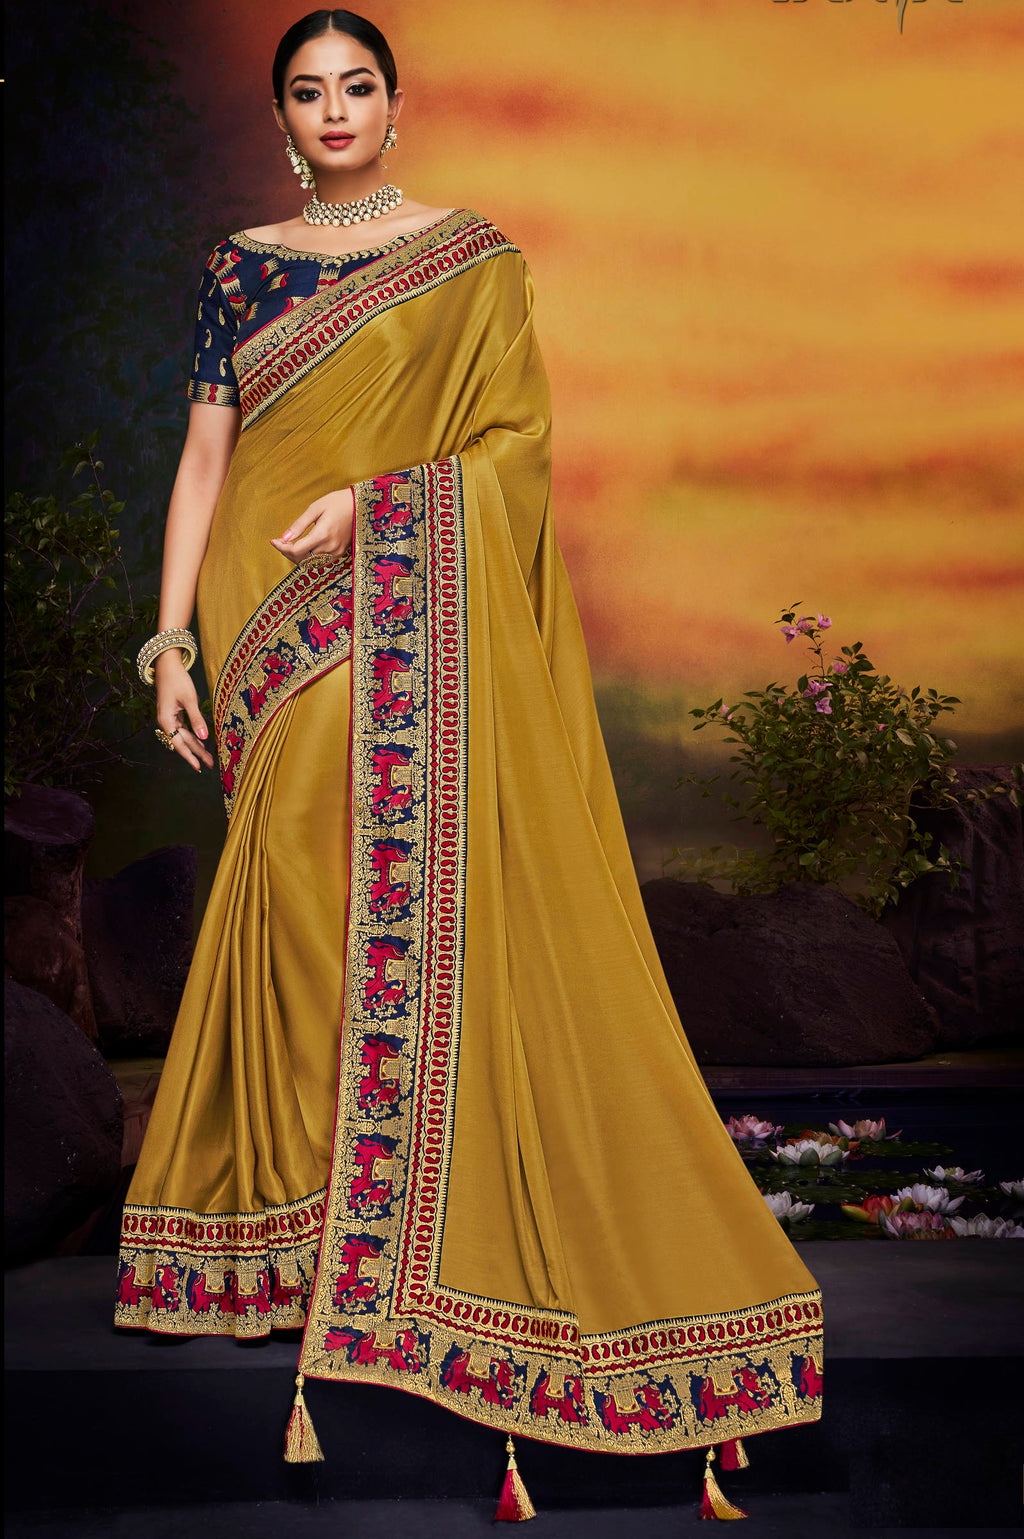 Golden Color Silk Stunning Bridal Wear Sarees NYF-4177 - YellowFashion.in